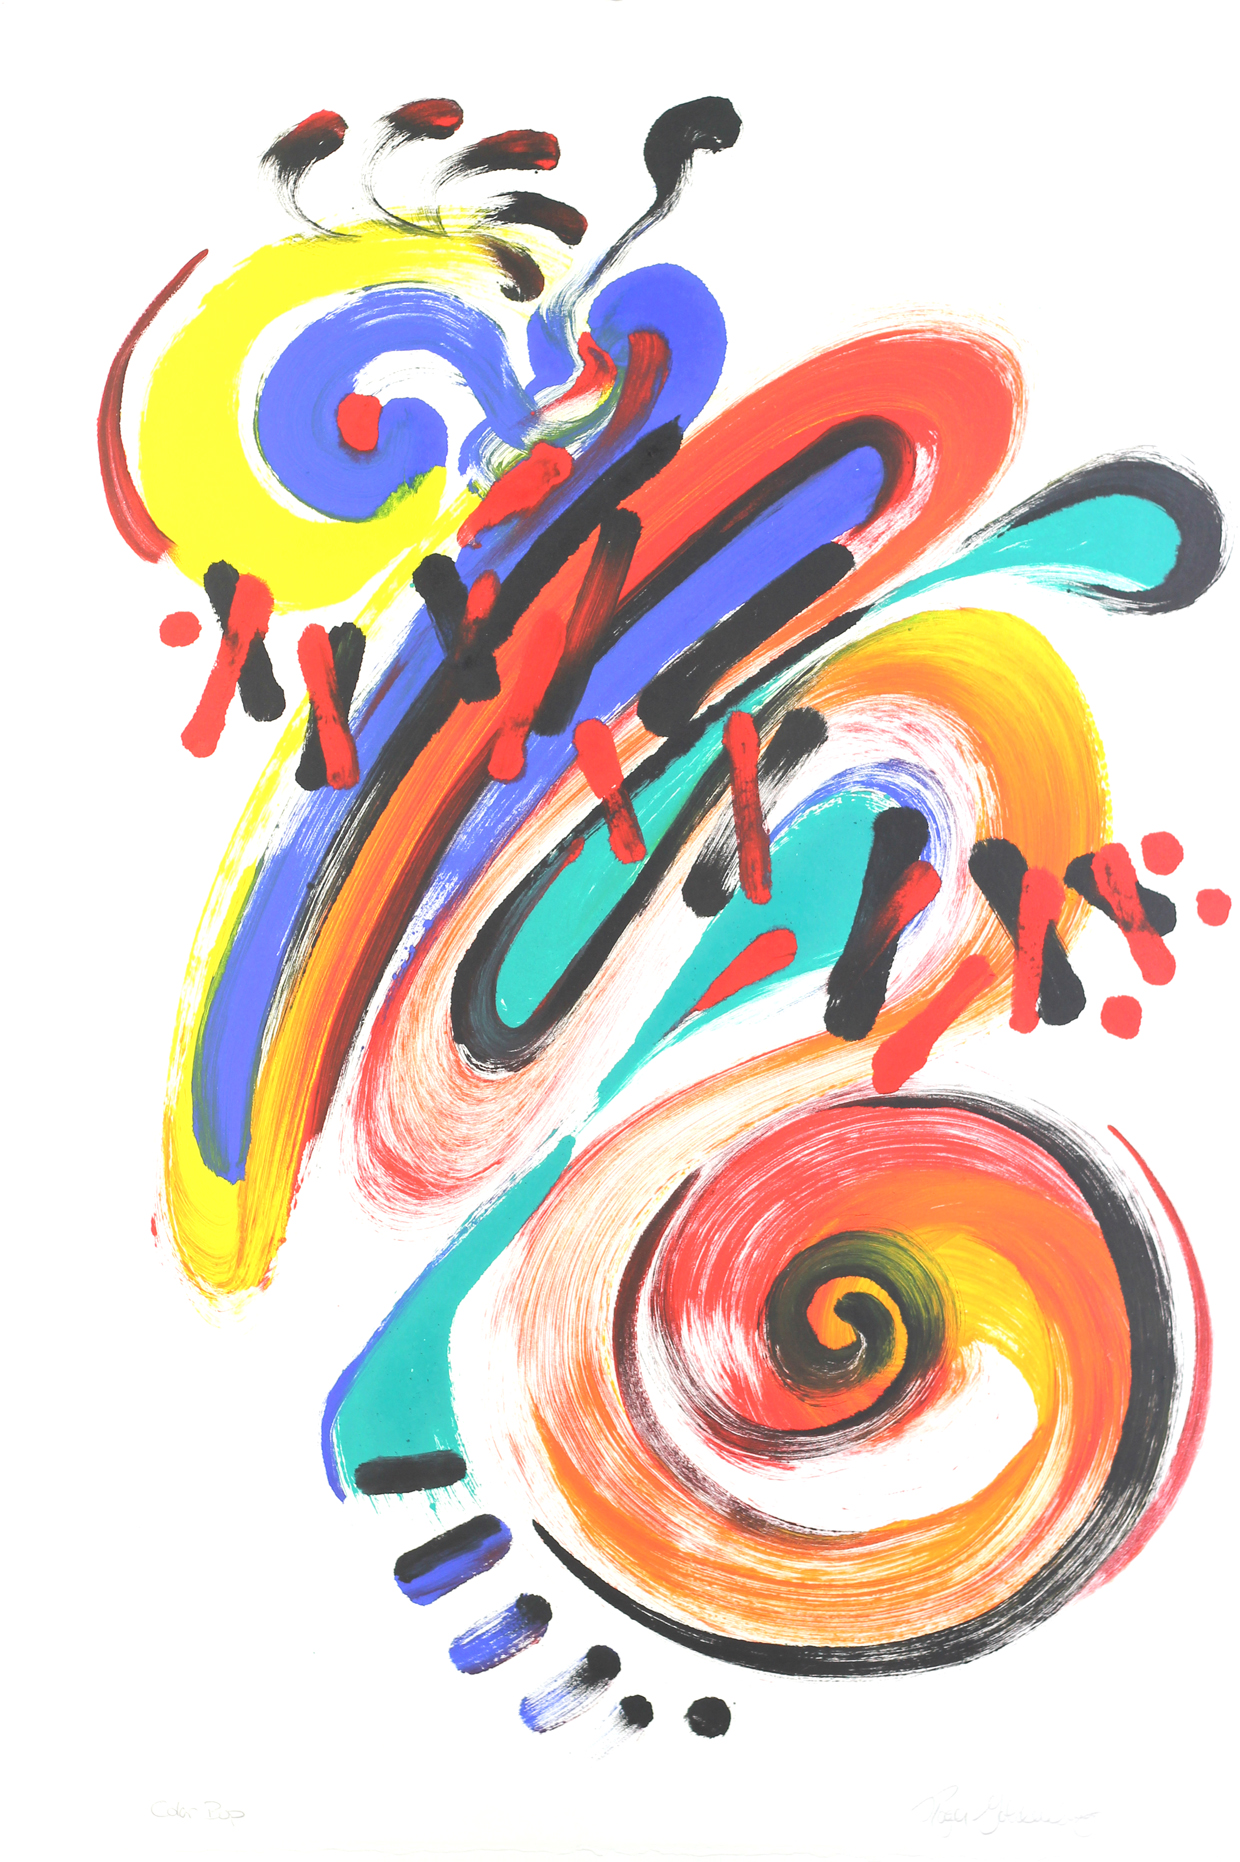 Roger Goldenberg's Visual Jazz Monotype Gallery D has prints pulled from shaped plates. Their style riffs on Goldenberg's shaped visual jazz paintings Color Bop